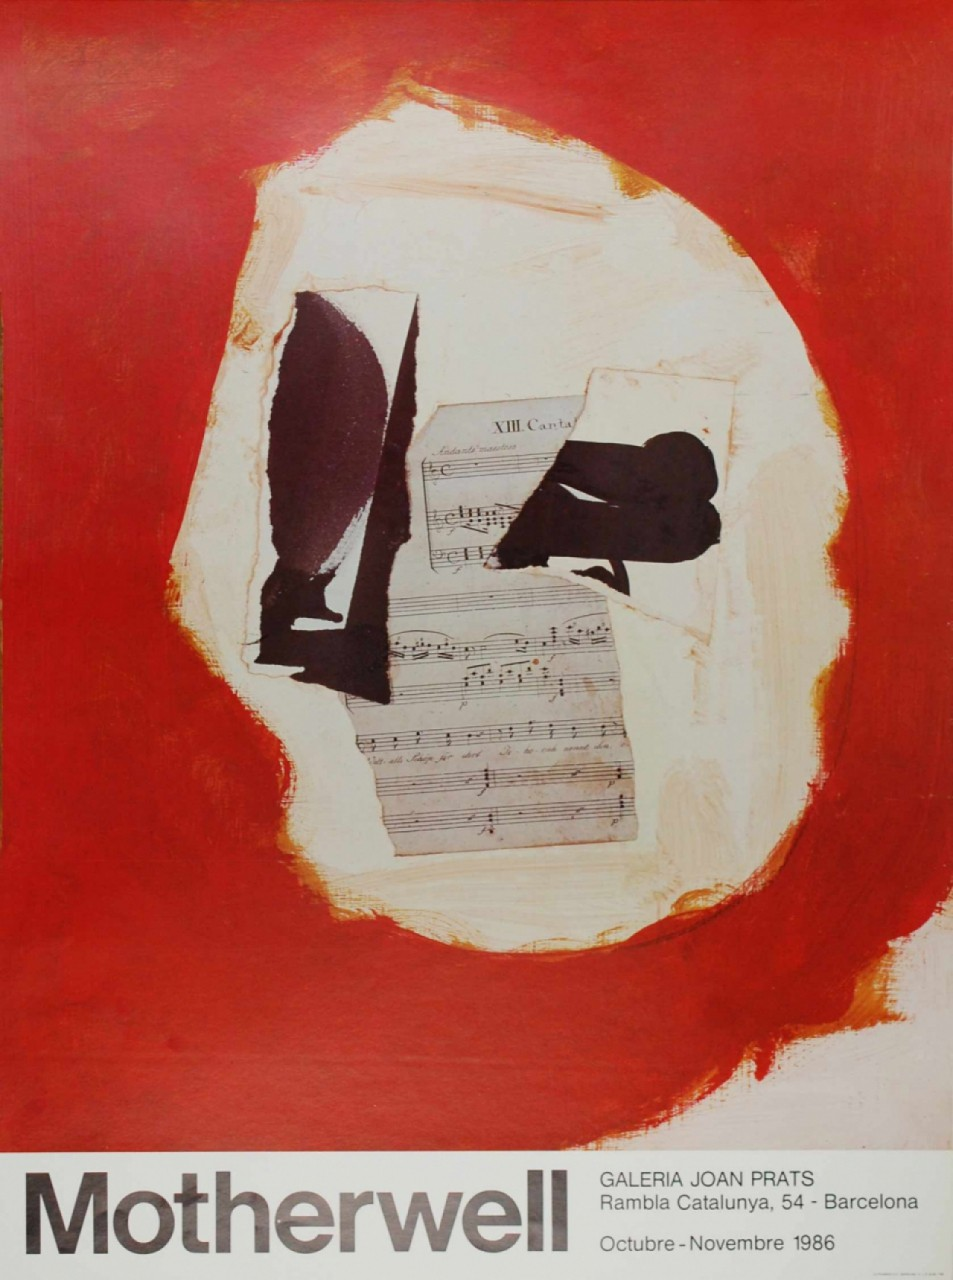 MOTHERWELL Robert composition musicale